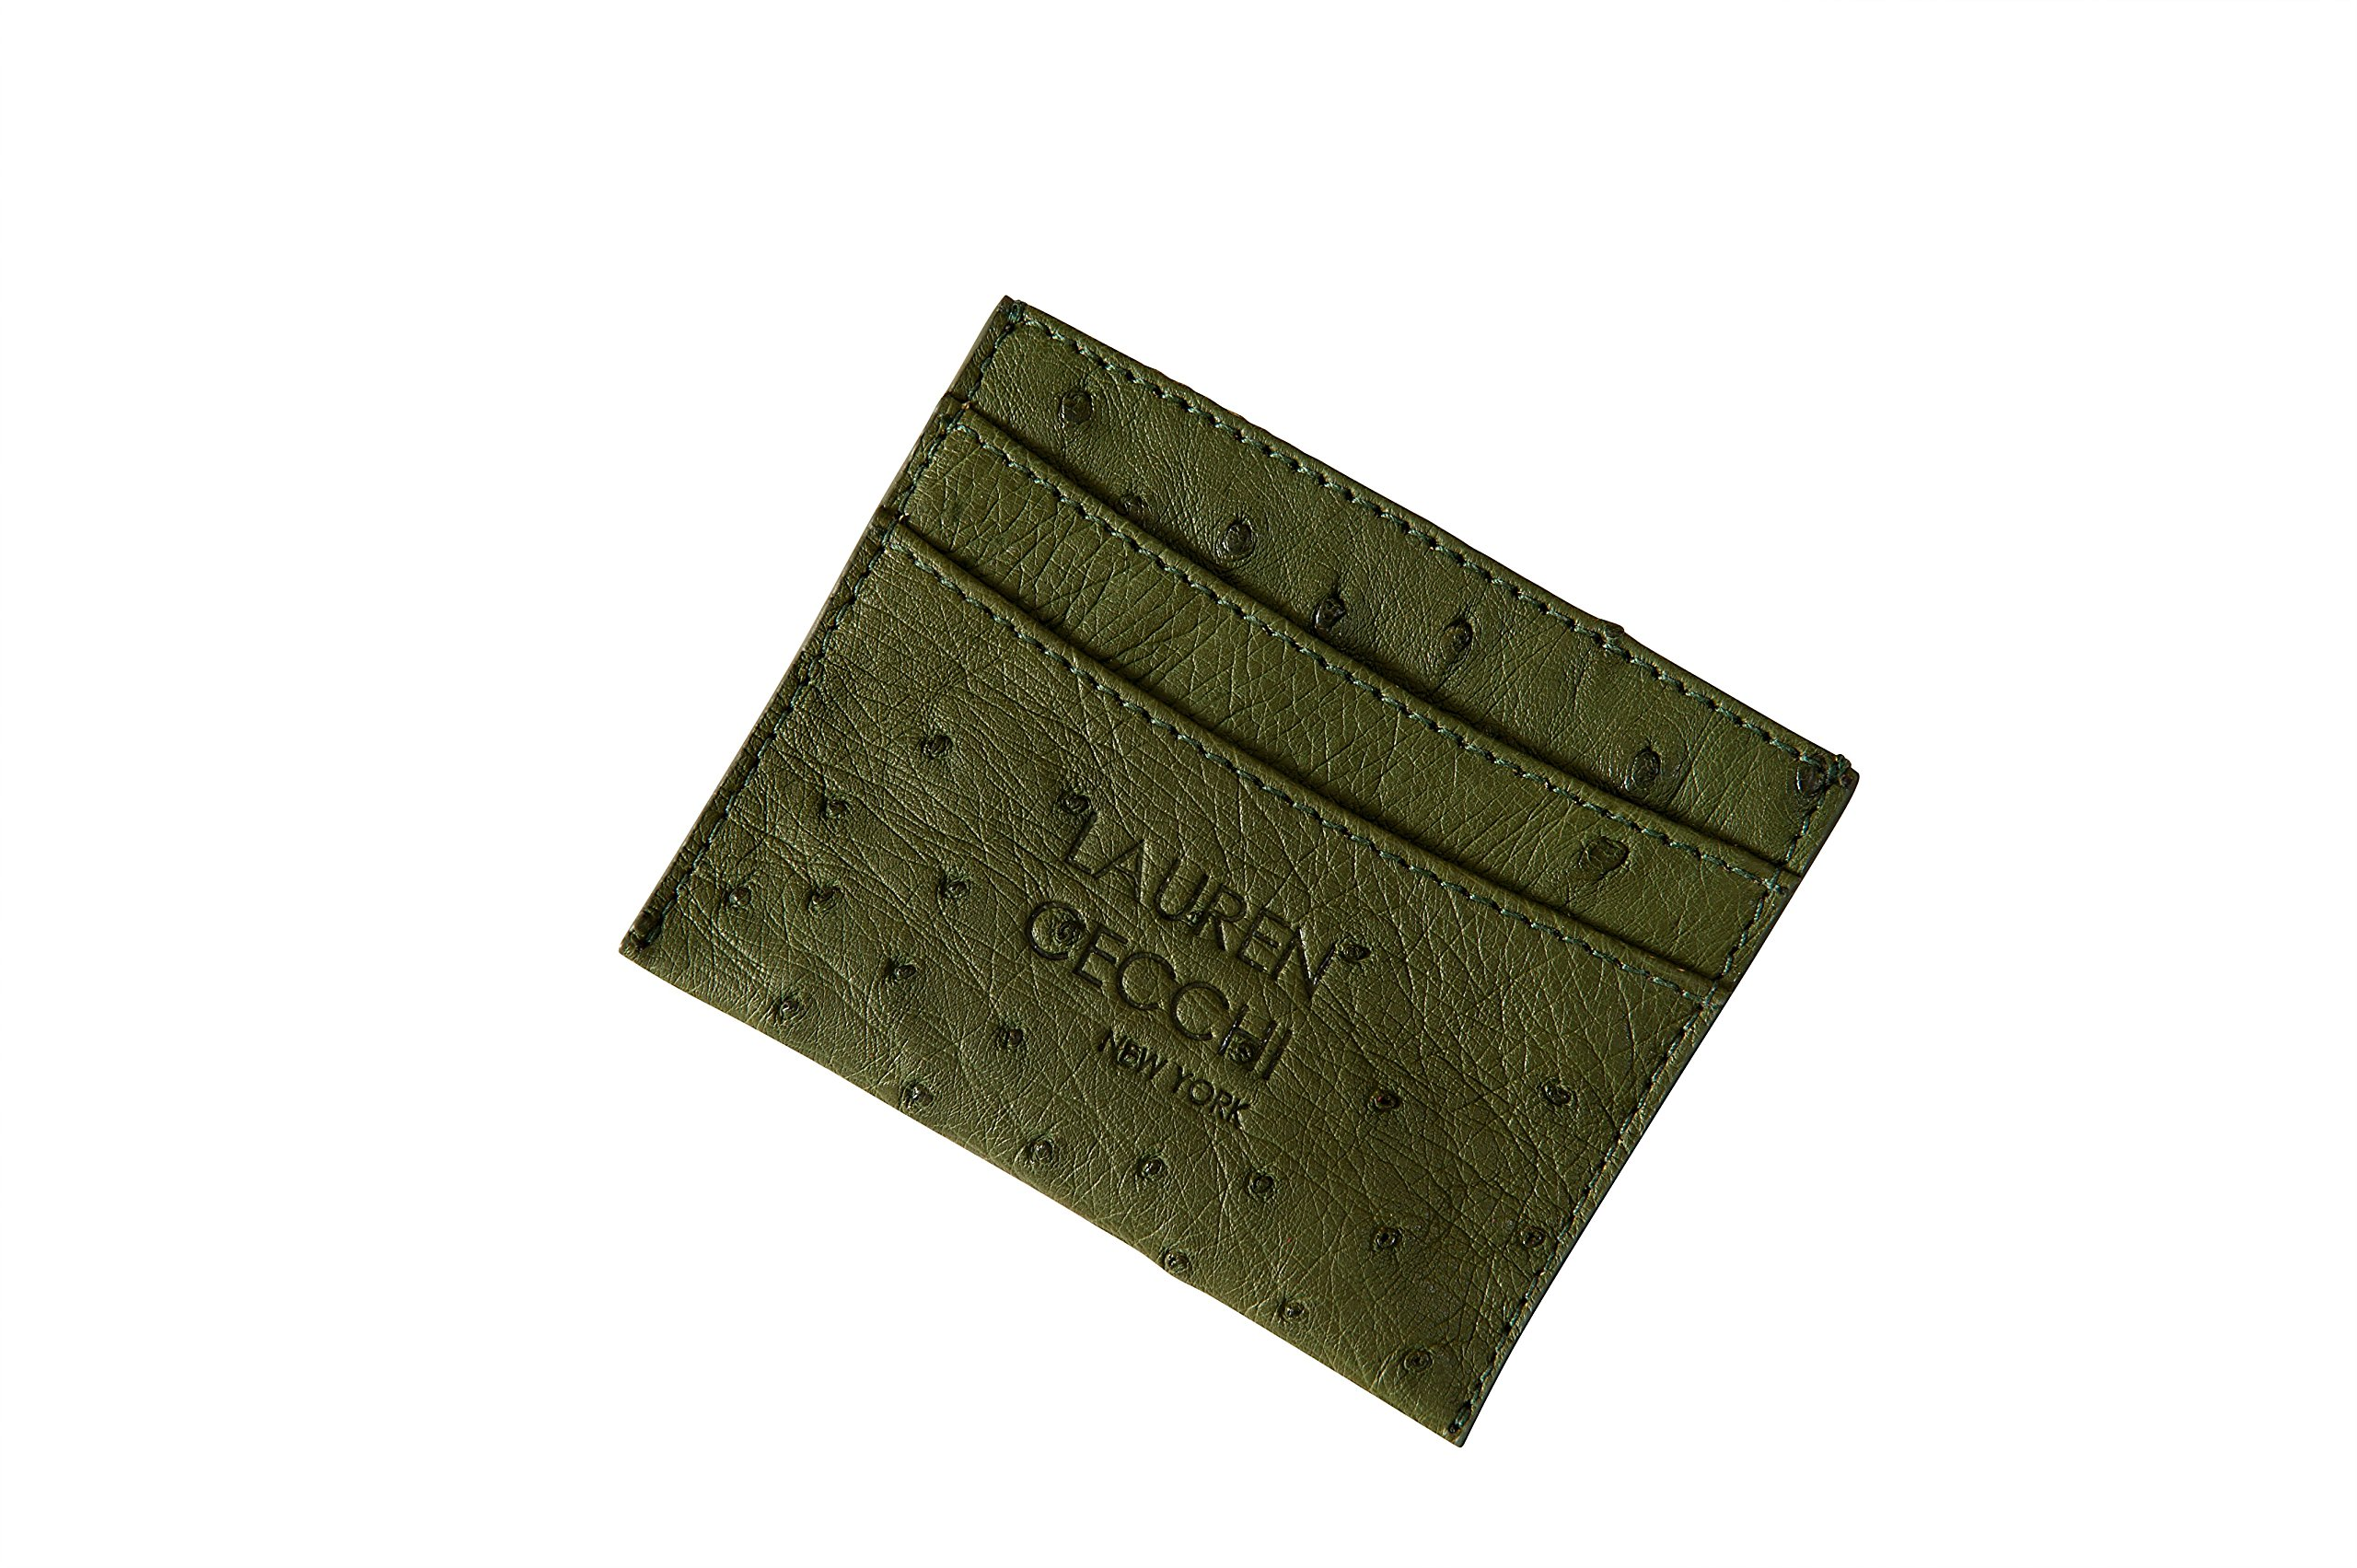 Credit Card Holder - Ostrich Leather Credit Cardholder - Lauren Cecchi New York Ostrich Leather Credit Cardholder For Credit Cards Money And ID-Army Green